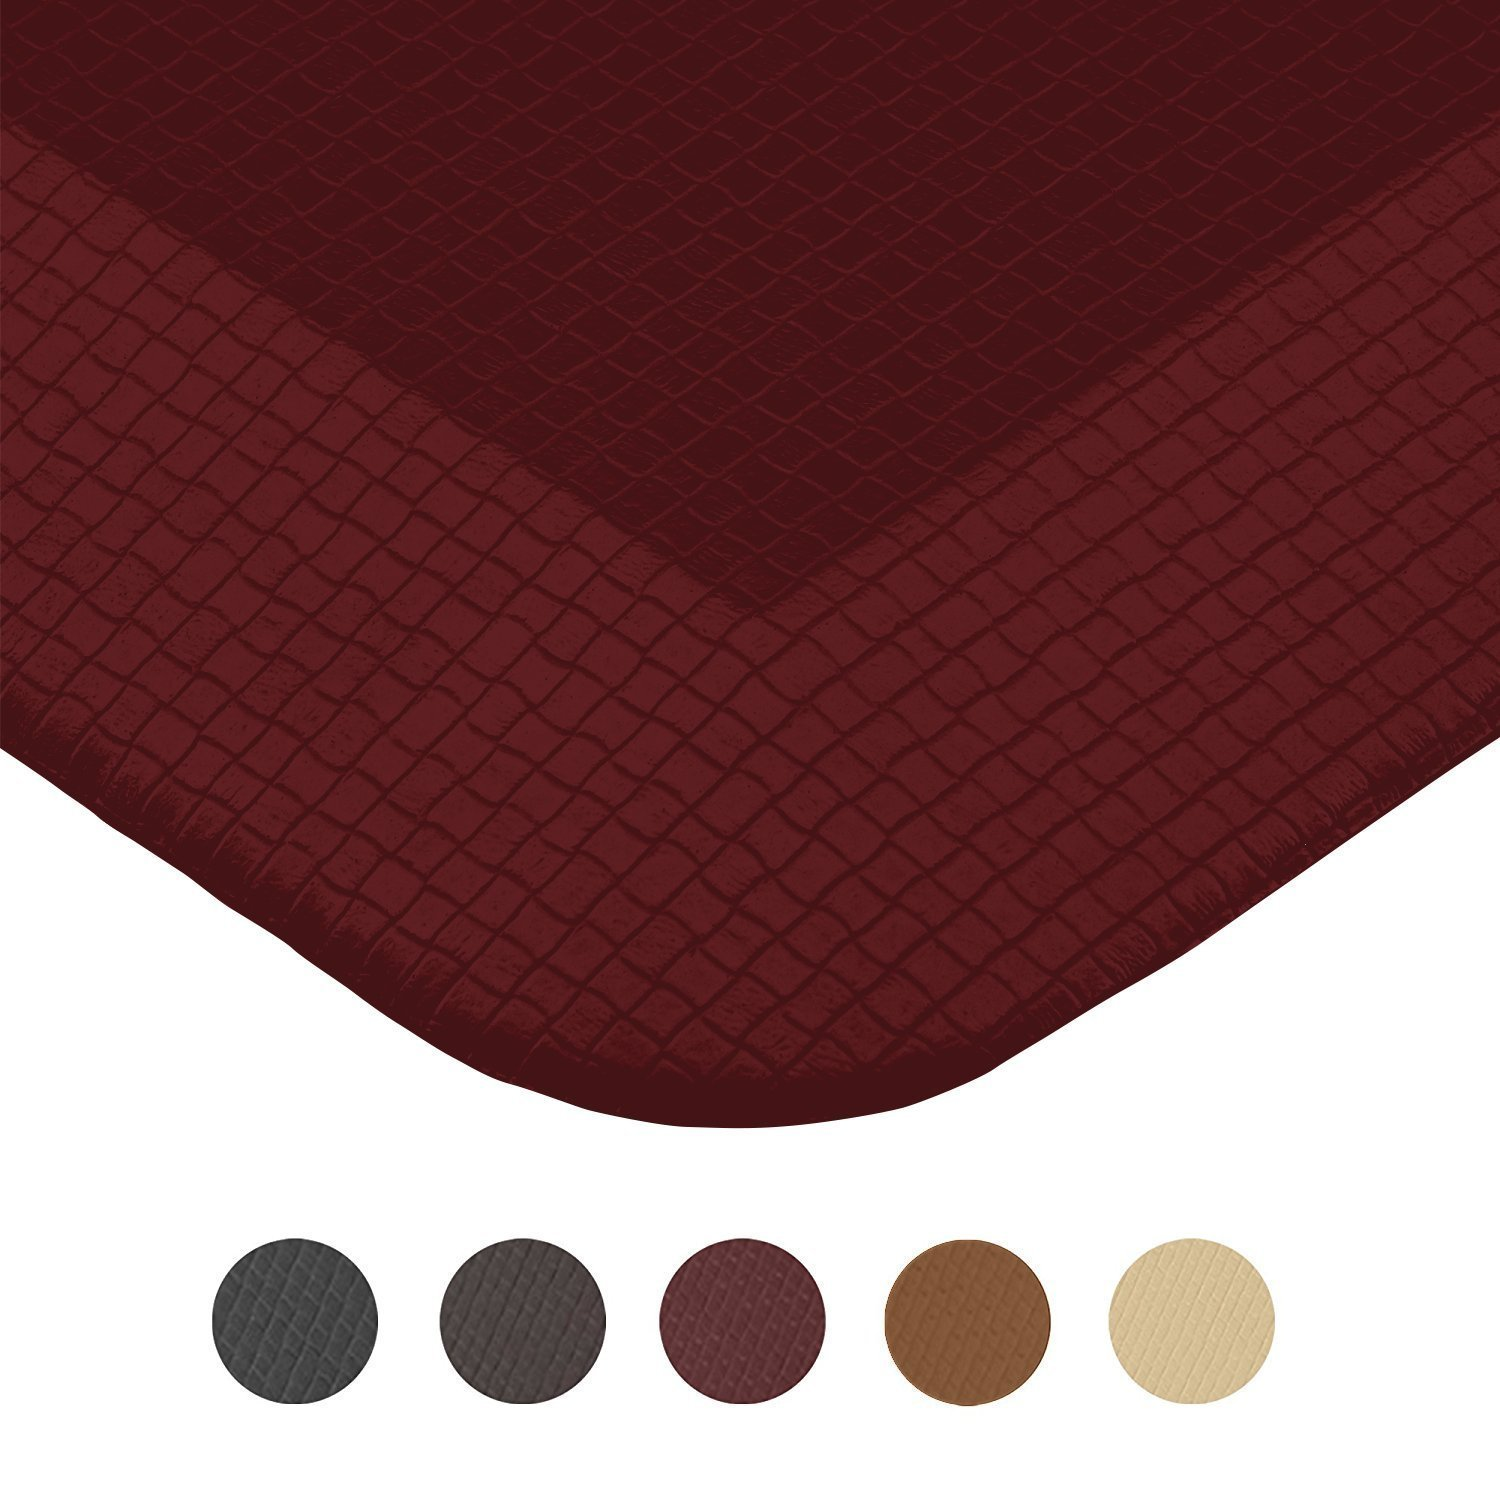 Royal Anti-Fatigue Comfort Mat - 20 in x 39 in x 3/4 in - Ergonomic Multi Surface, Non-Slip - Waterproof All-Purpose Luxurious Comfort - For Kitchen, Bathroom or Workstations - Burgundy by Royal (Image #6)